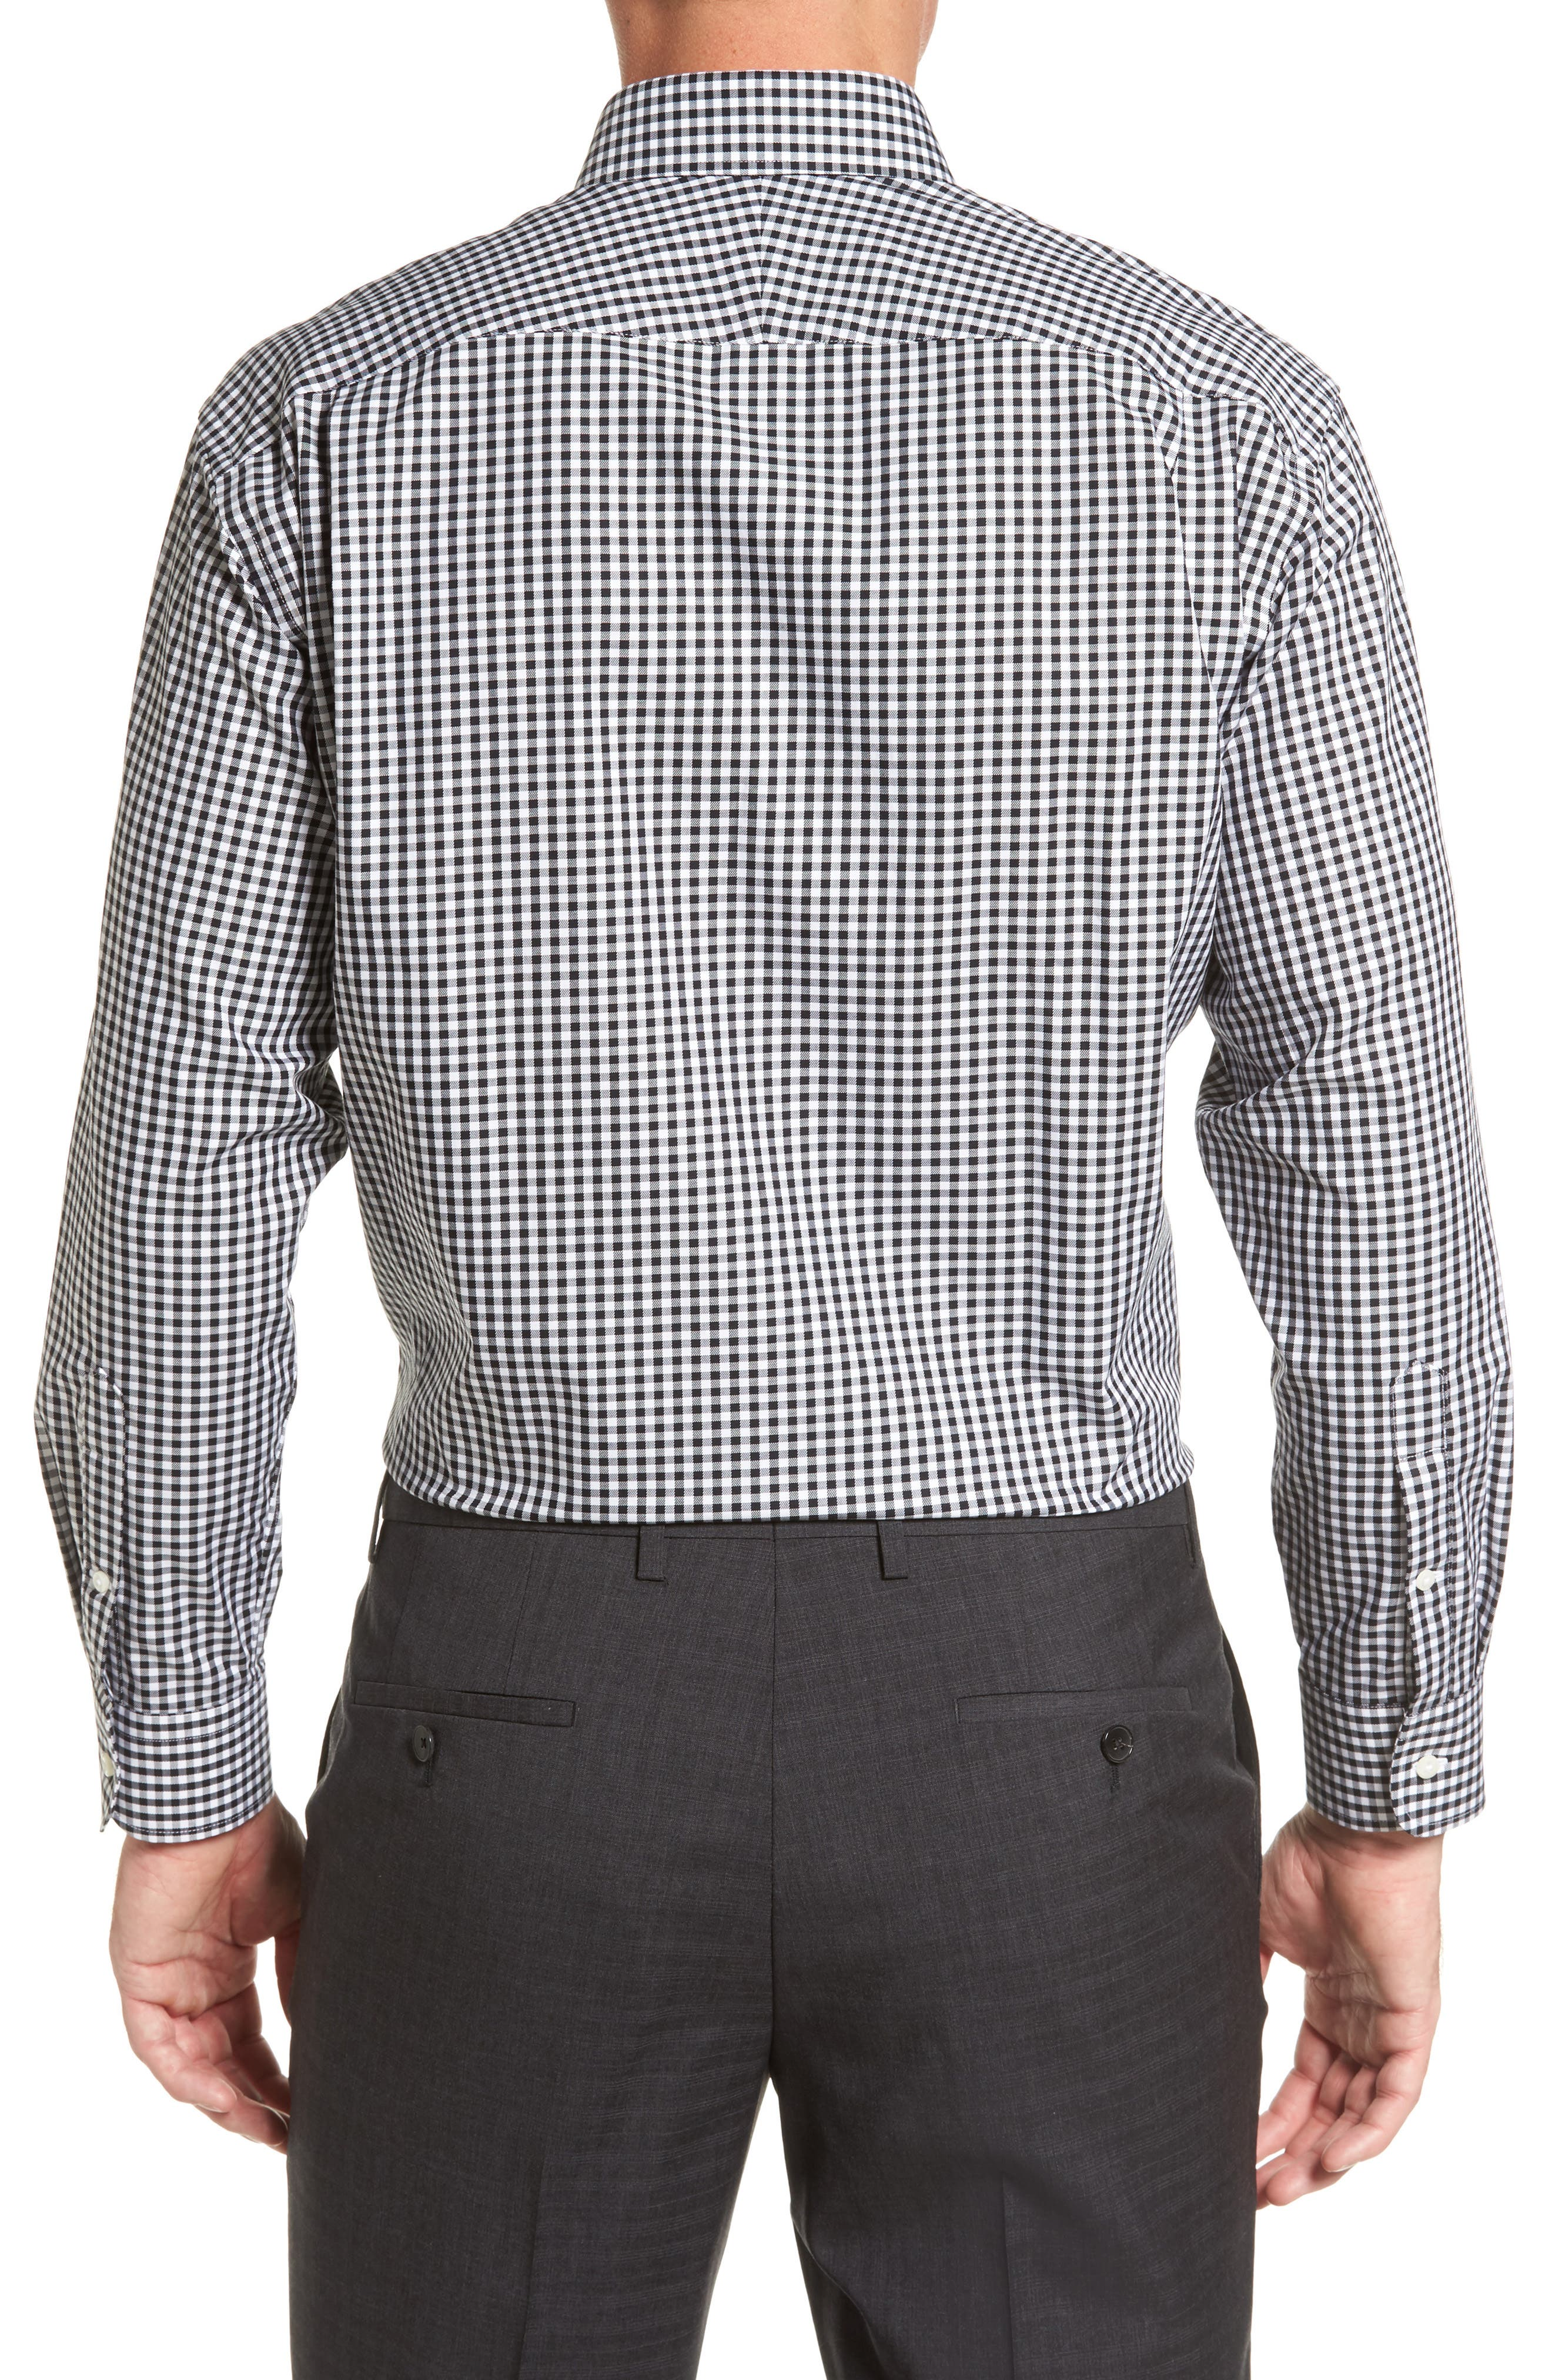 Classic Fit Non-Iron Gingham Dress Shirt,                             Alternate thumbnail 2, color,                             BLACK ROCK